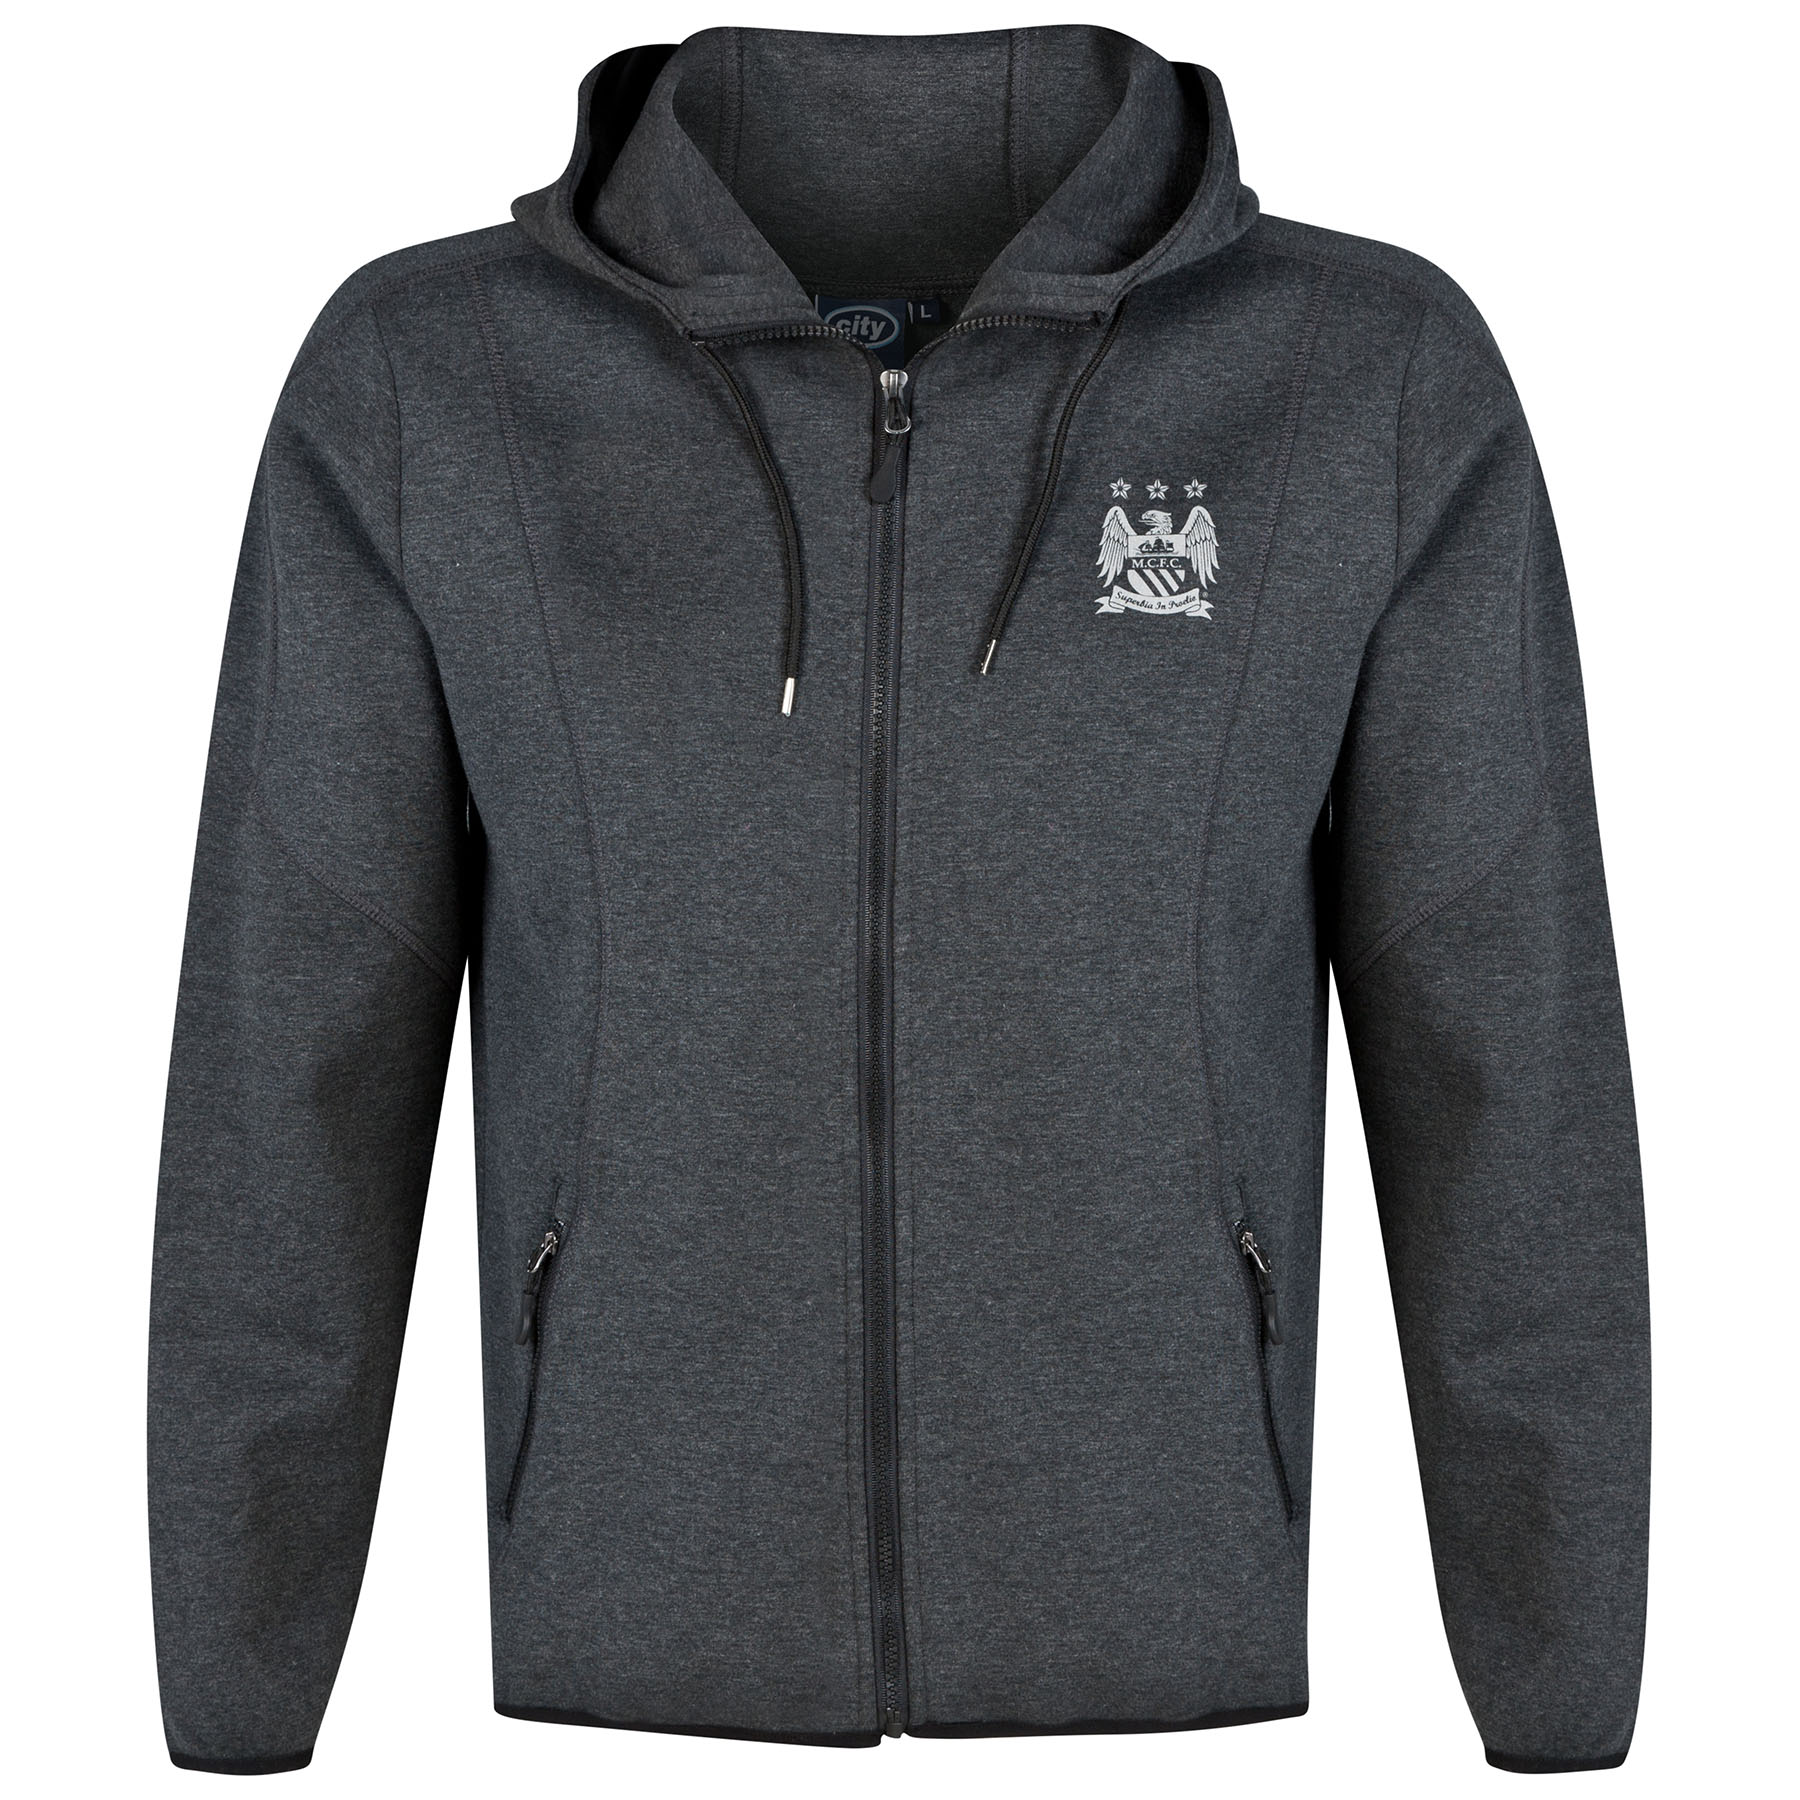 Manchester City Technical Hoodie - Charcoal Marl - Older Boys